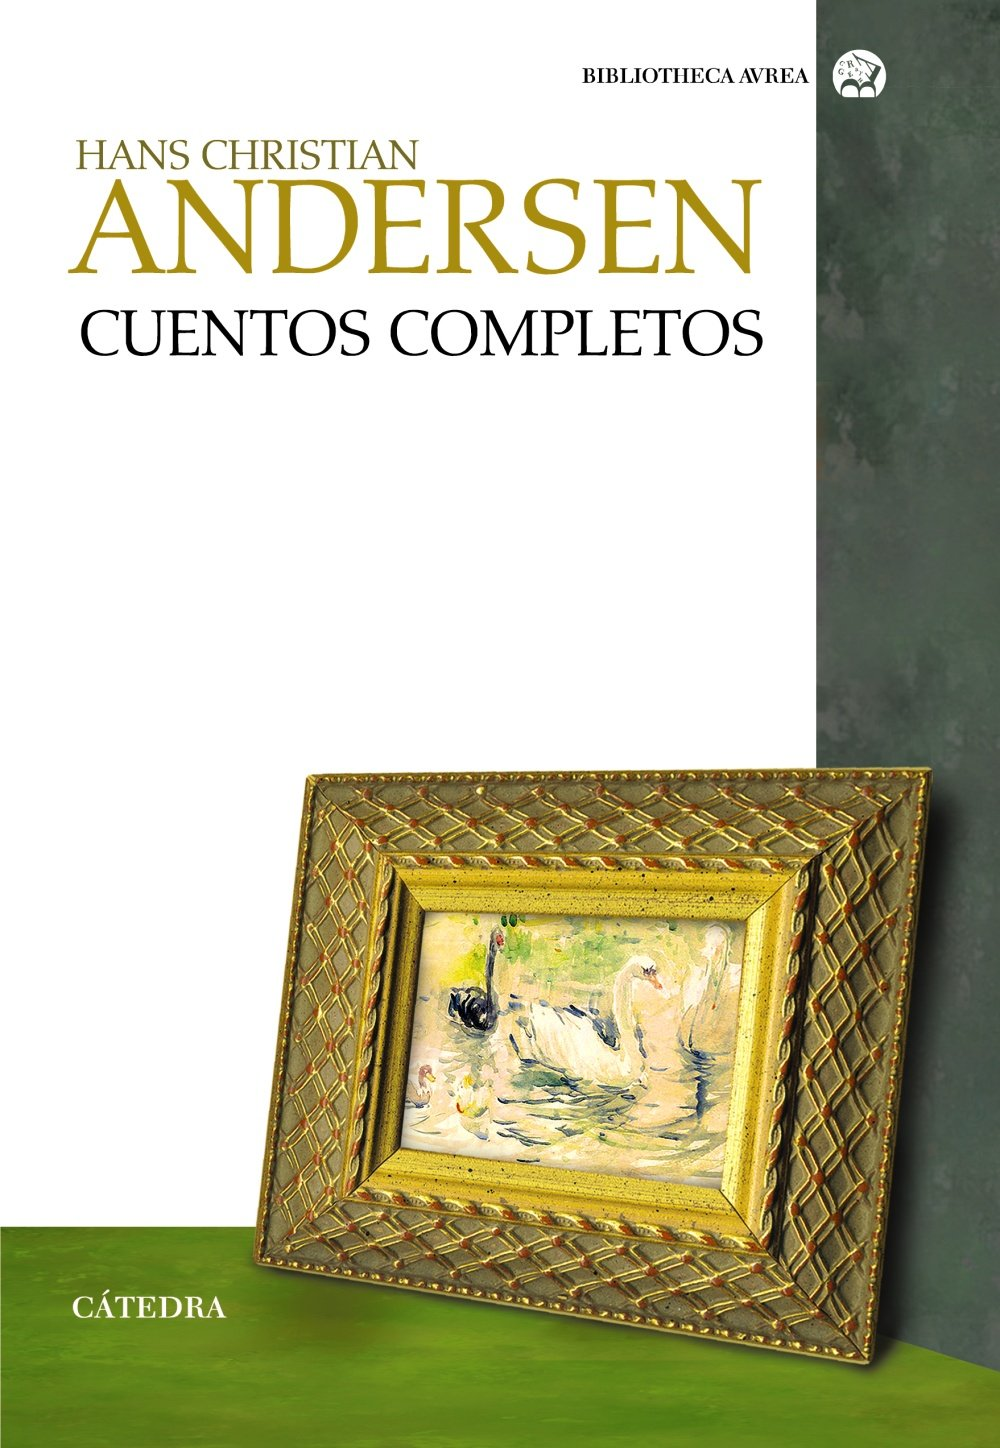 Download Cuentos completos / Complete stories (Spanish Edition) ebook